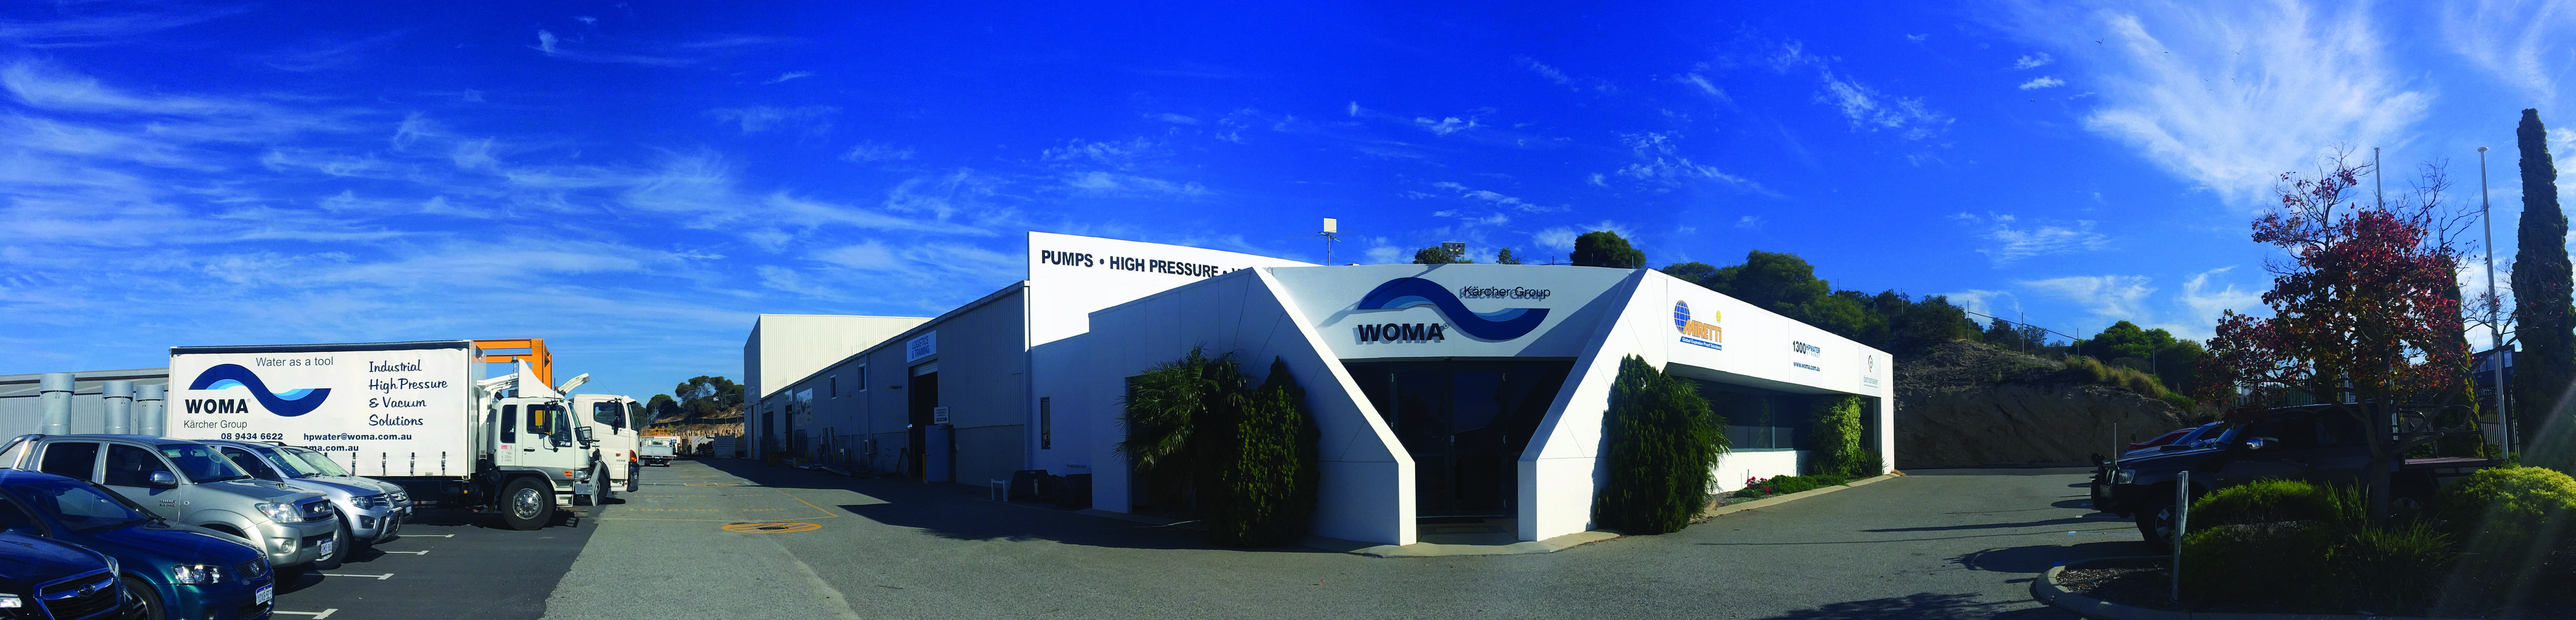 High & Ultra High Water Jetting Pumps & Equipment | WOMA